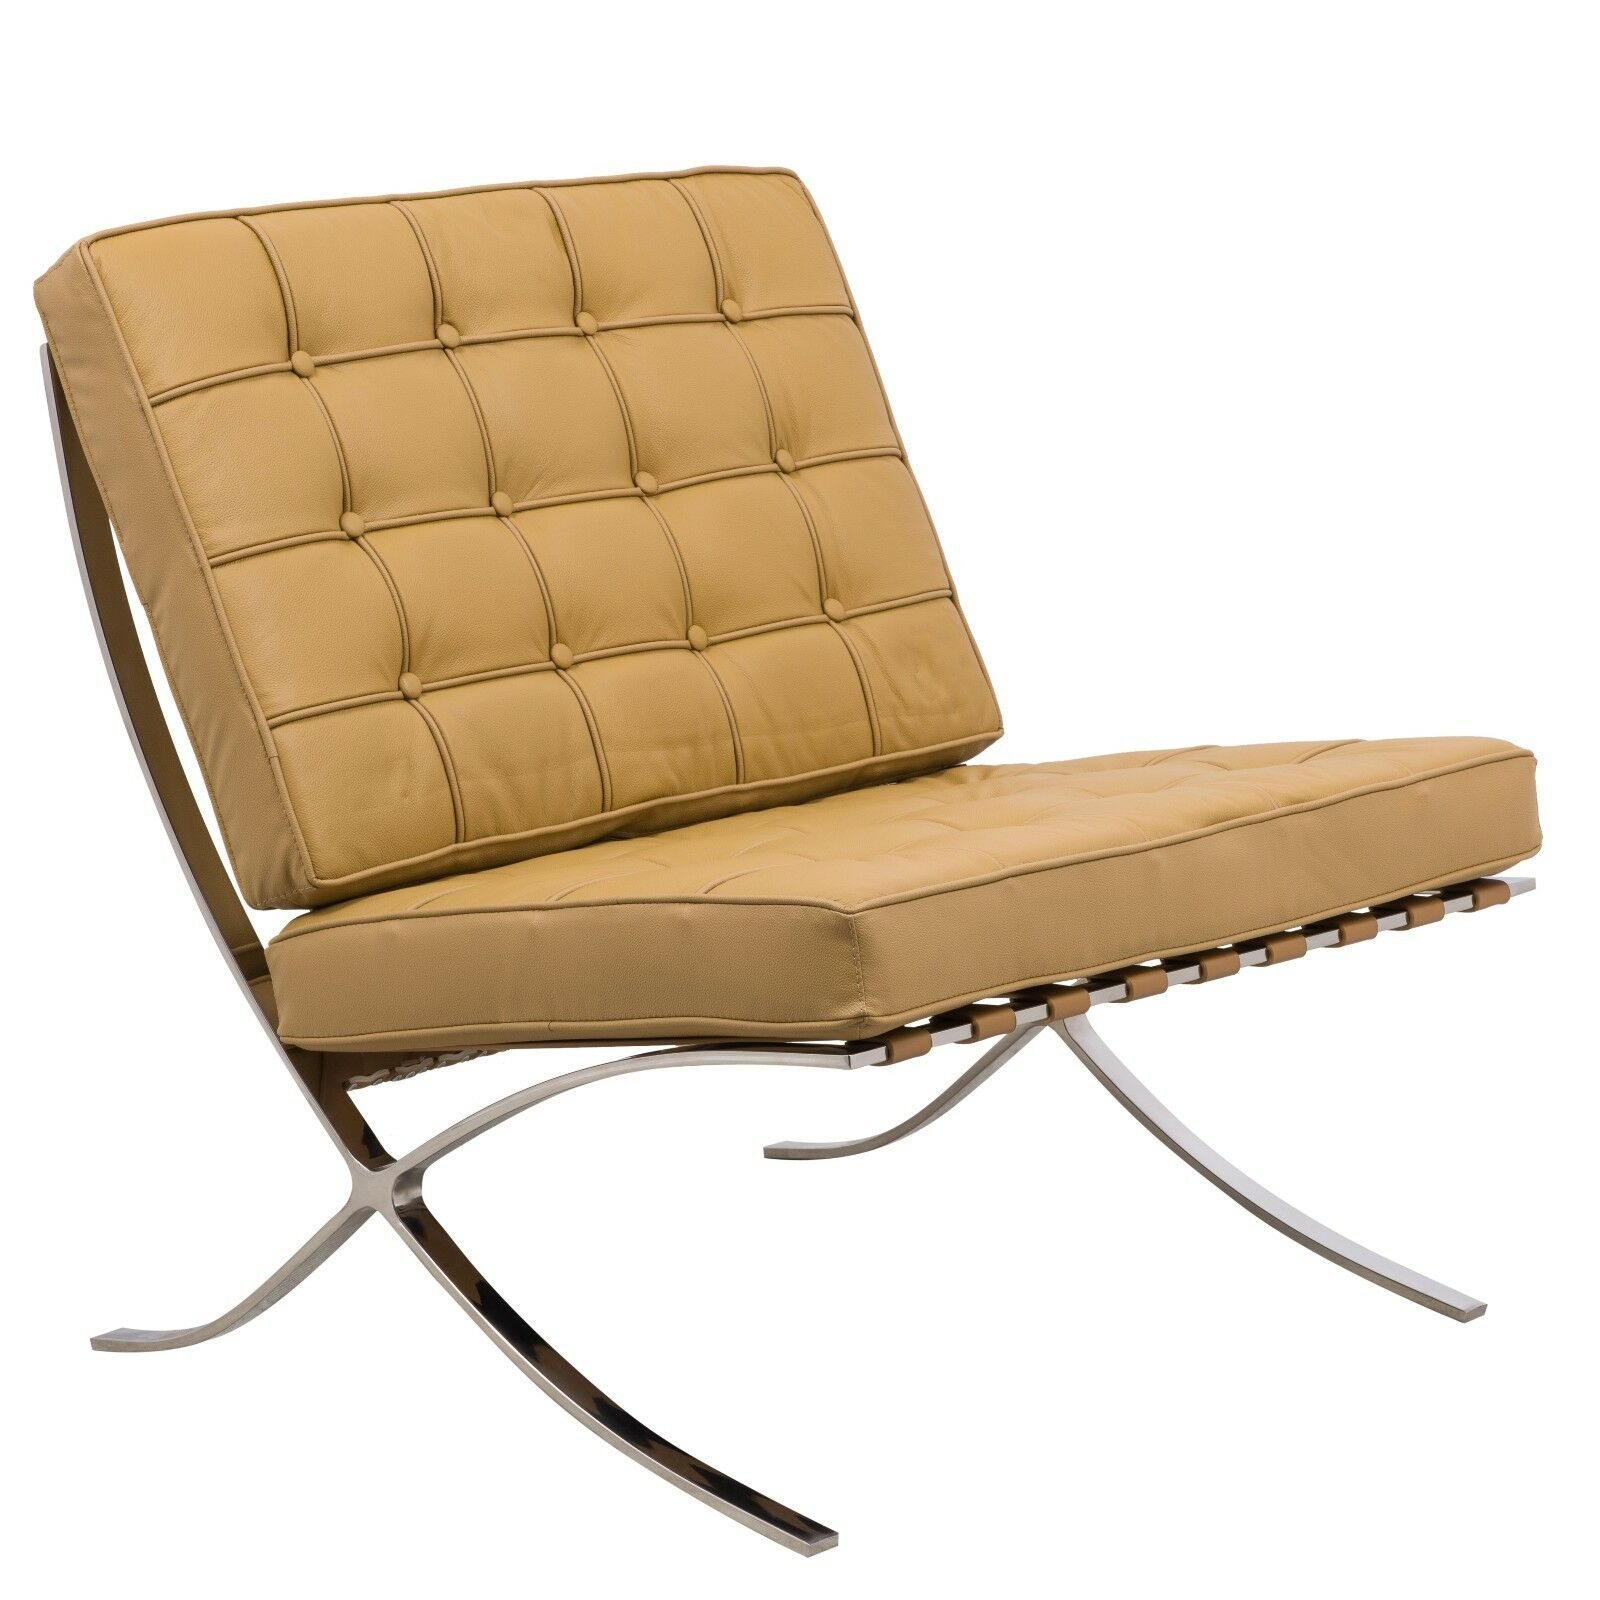 Pavilion Chair Barcelona Style Modern Leather Pavilion Chair In Light